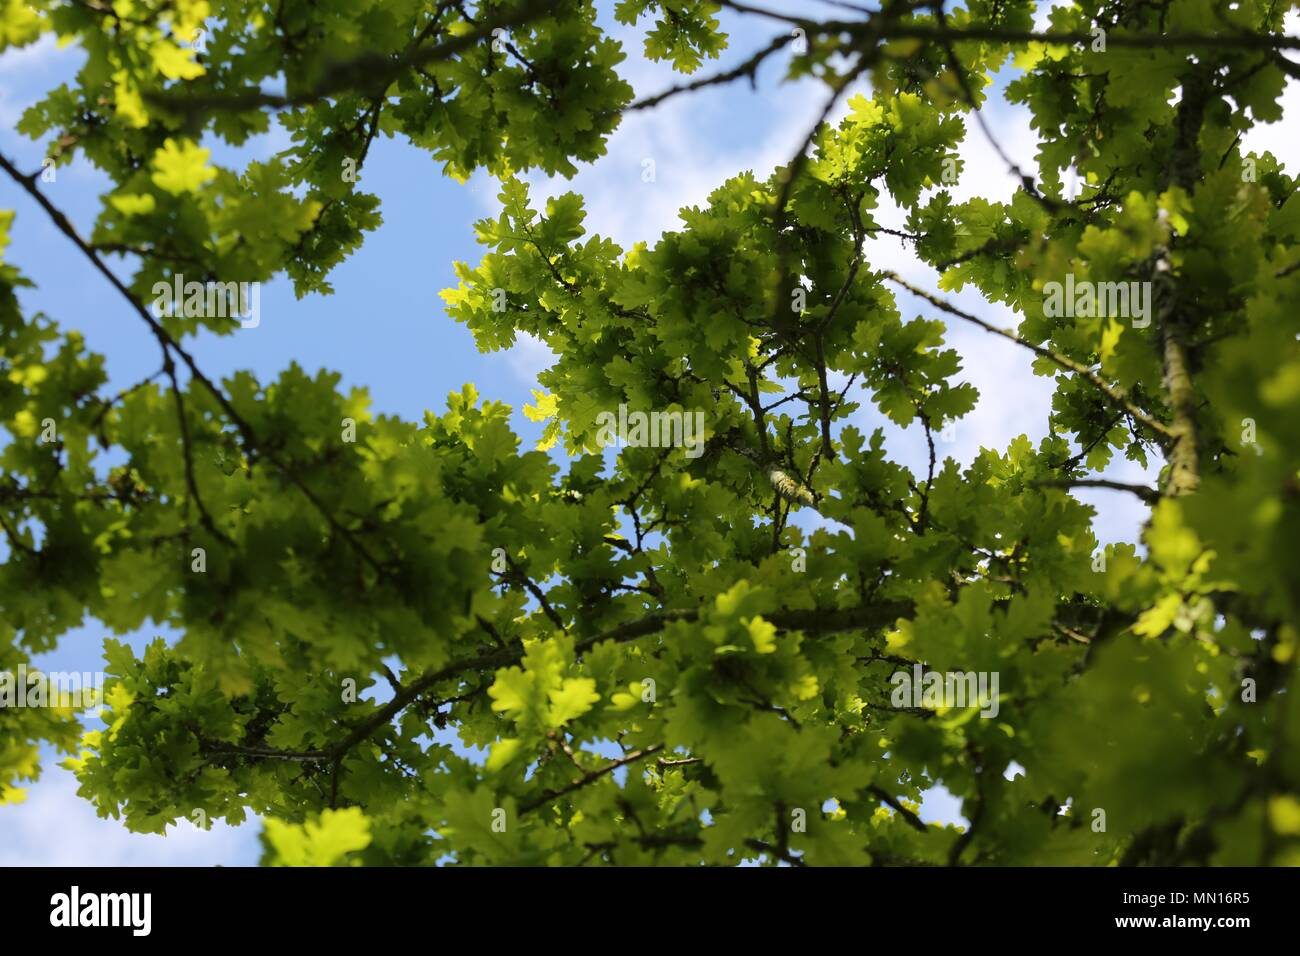 Oak tree view from underneath the canopy - Stock Image